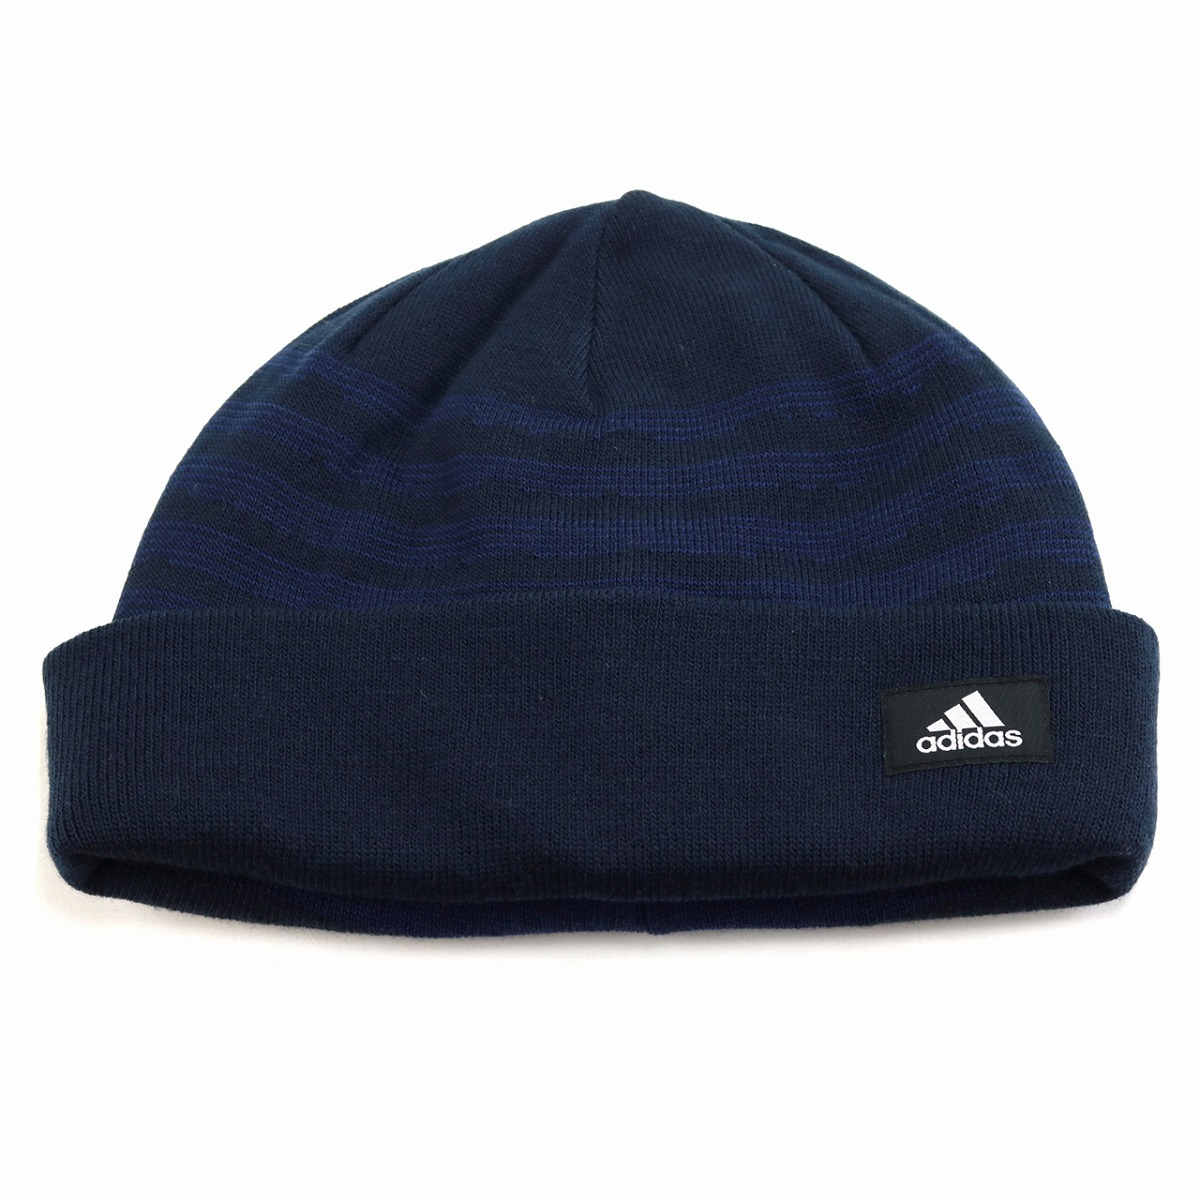 Adidas hat men adidas knit hat horizontal stripe lapel ニットワッチ cold  protection brand logo knit ... 439aaa47bff